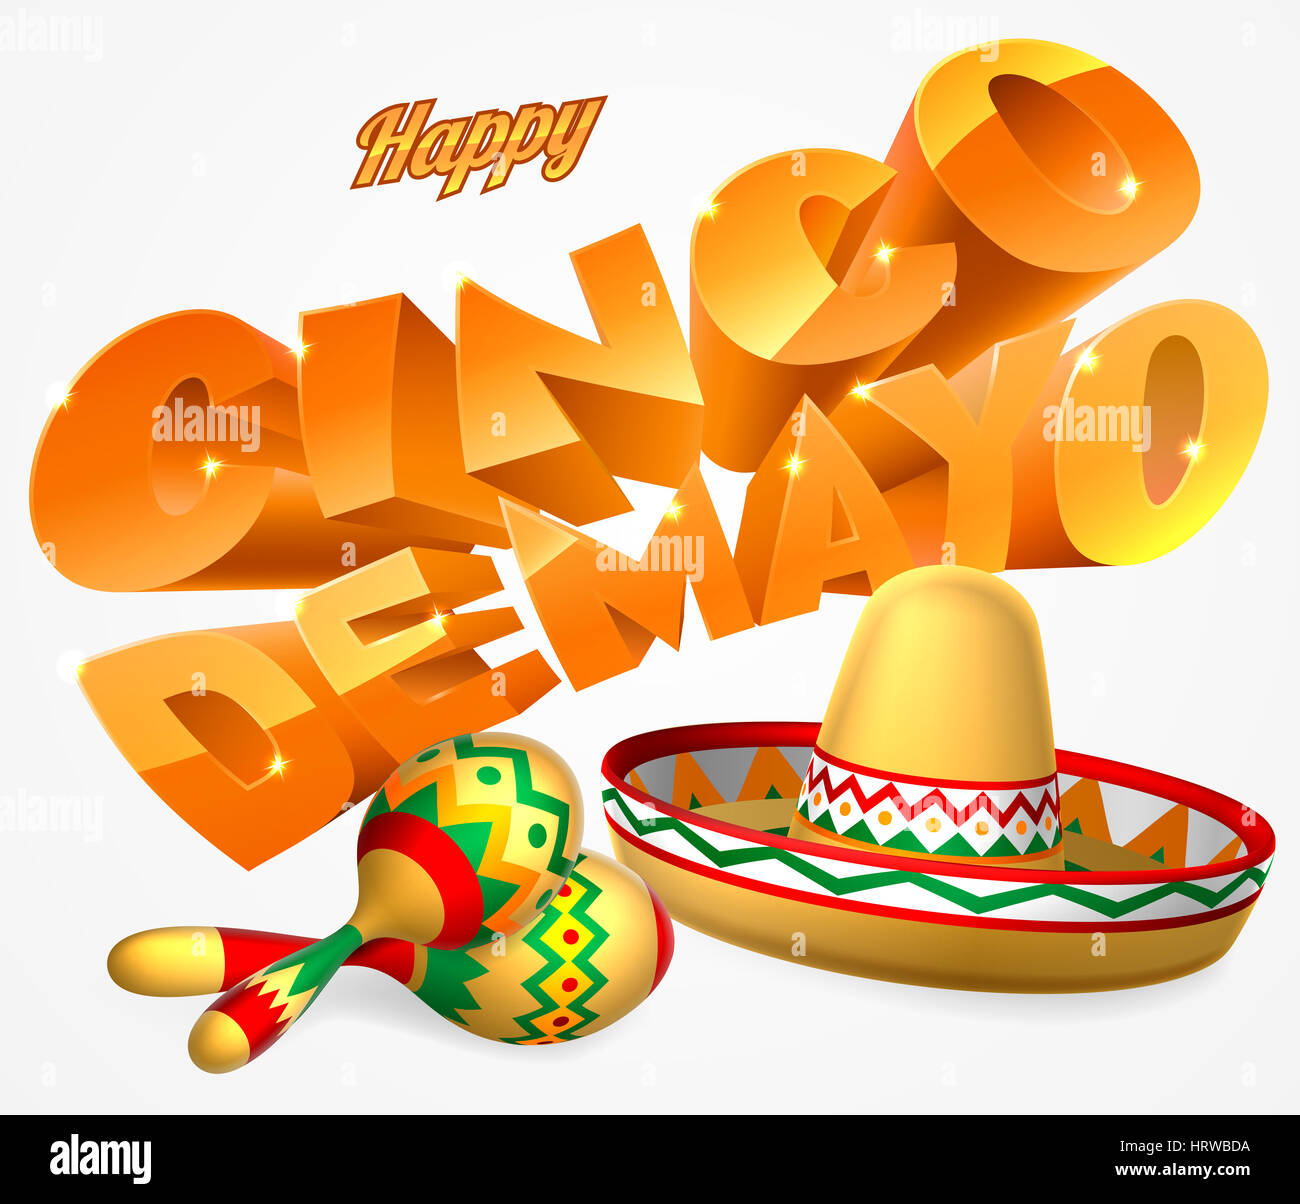 A happy cinco de mayo label sign decal design with mexican sombrero straw sun hat and maracas shakers